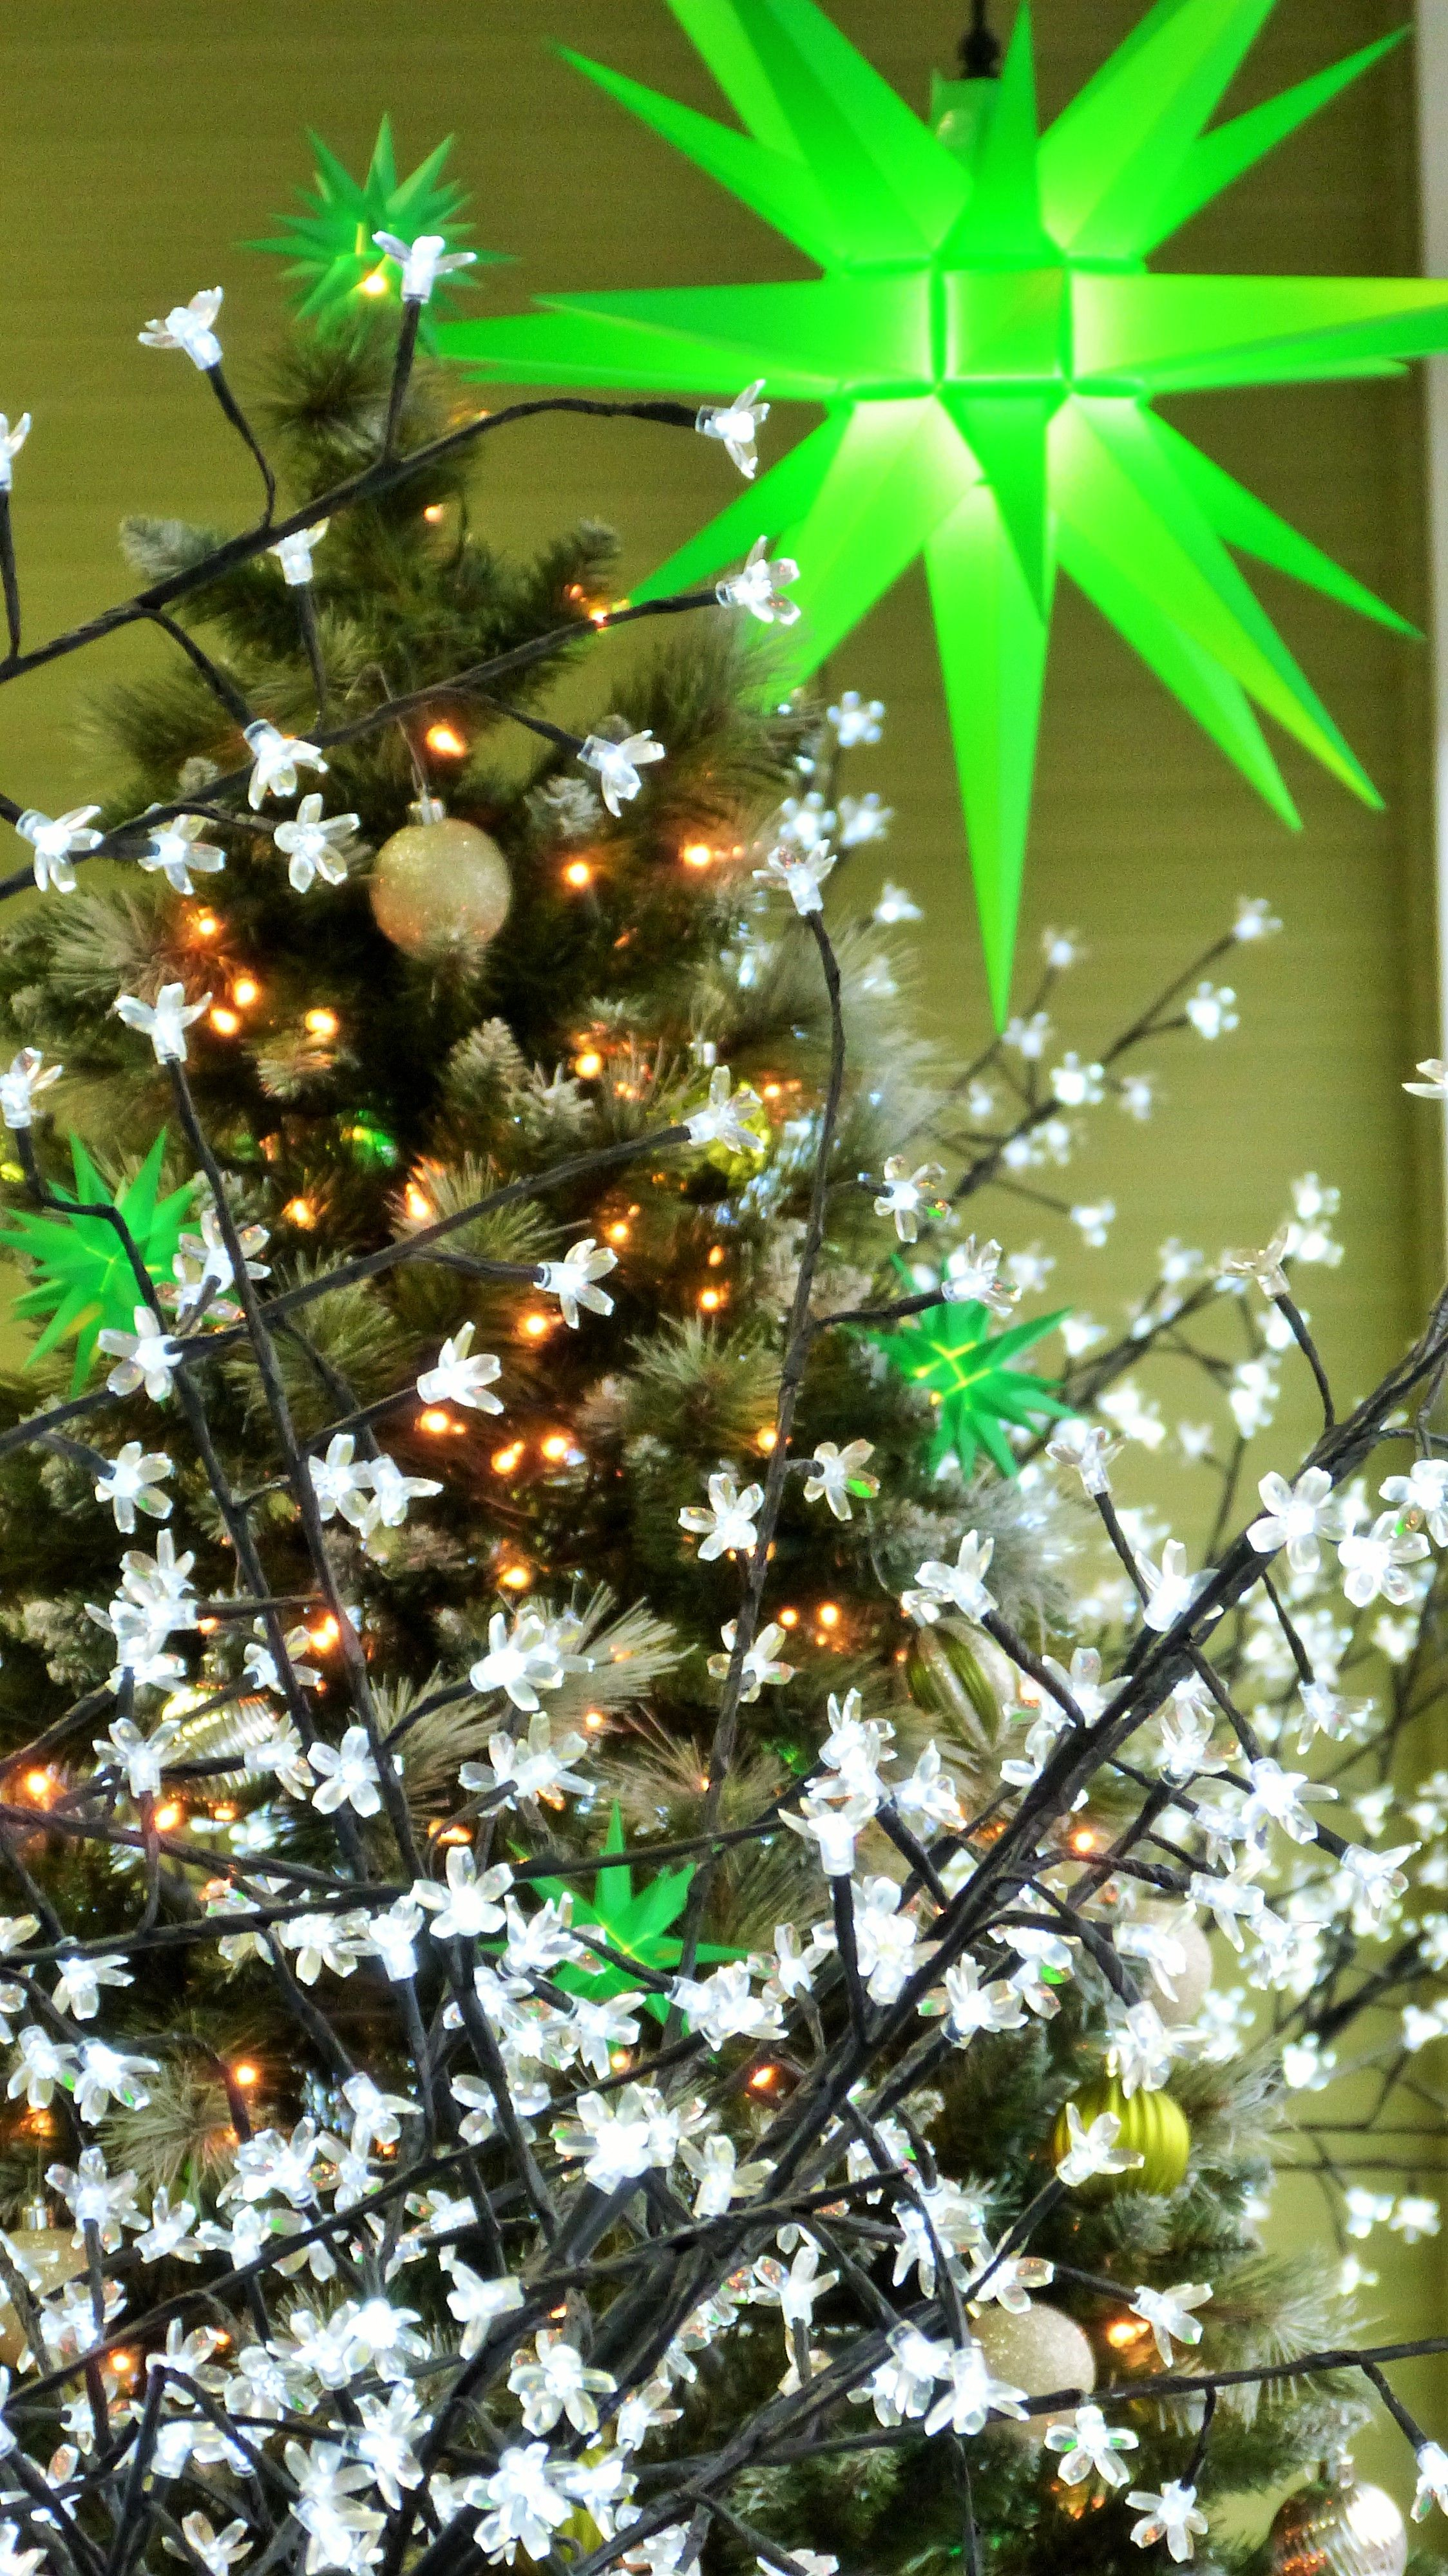 Td Bank Christmas Eve Hours.Green Christmas Tree Decoration With A Herrnhut Star Chain